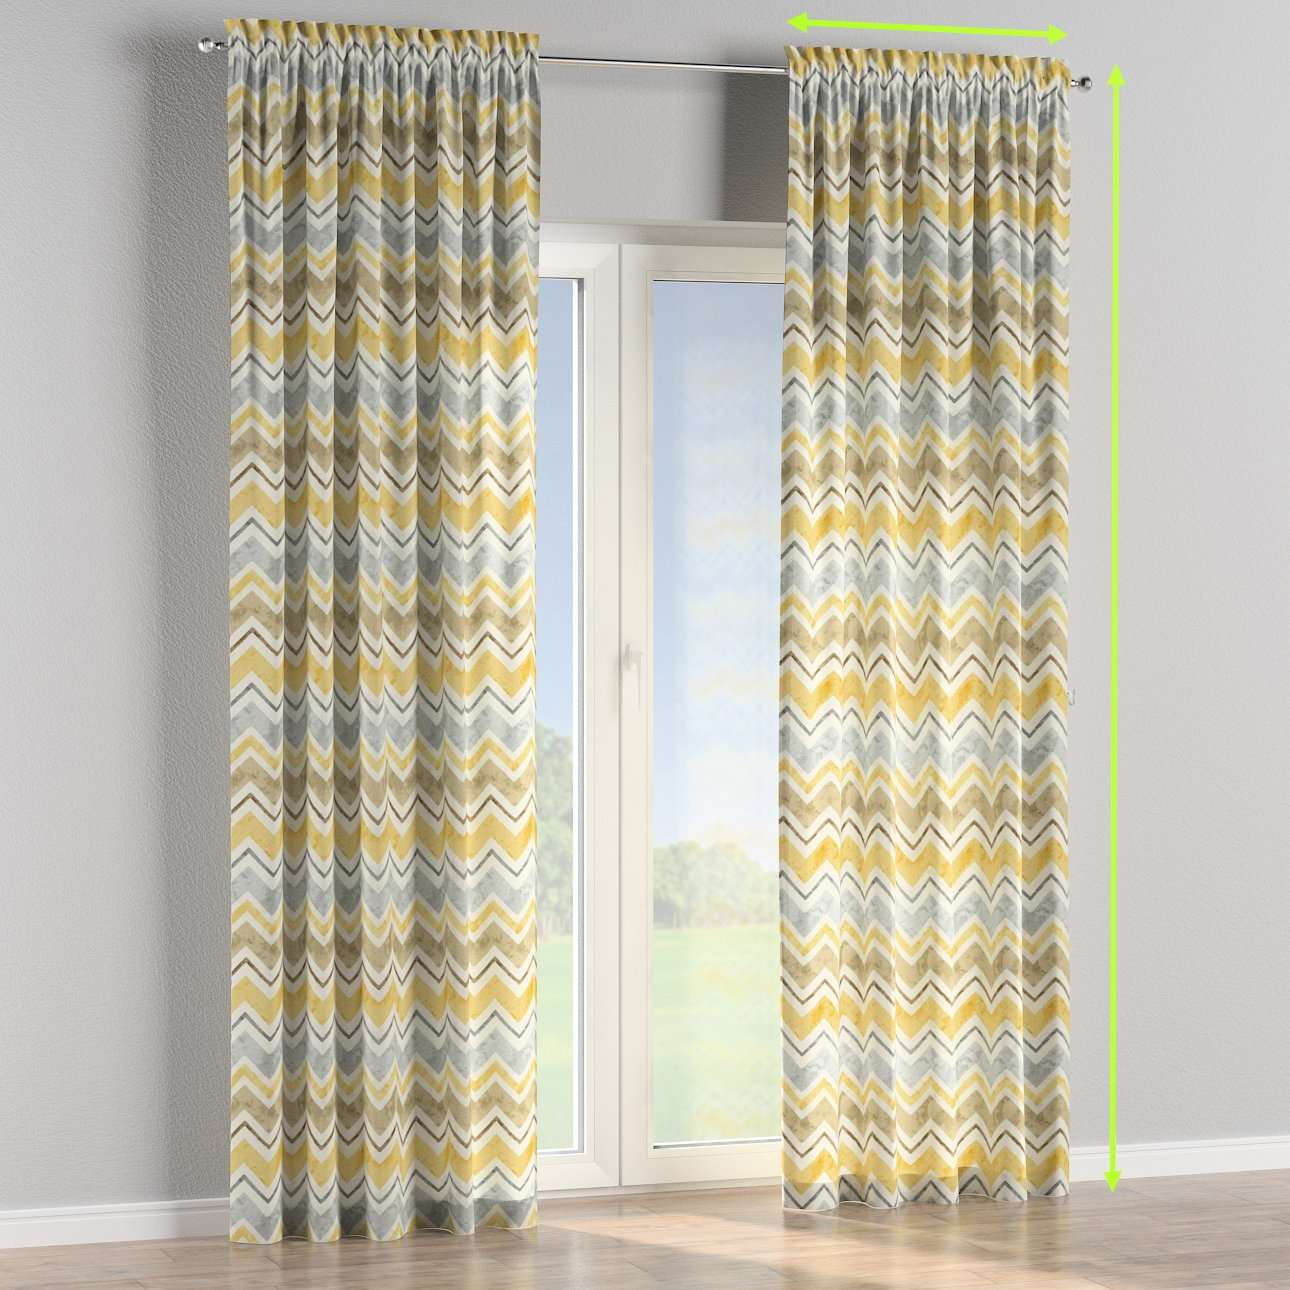 Slot and frill lined curtains in collection Acapulco, fabric: 141-39